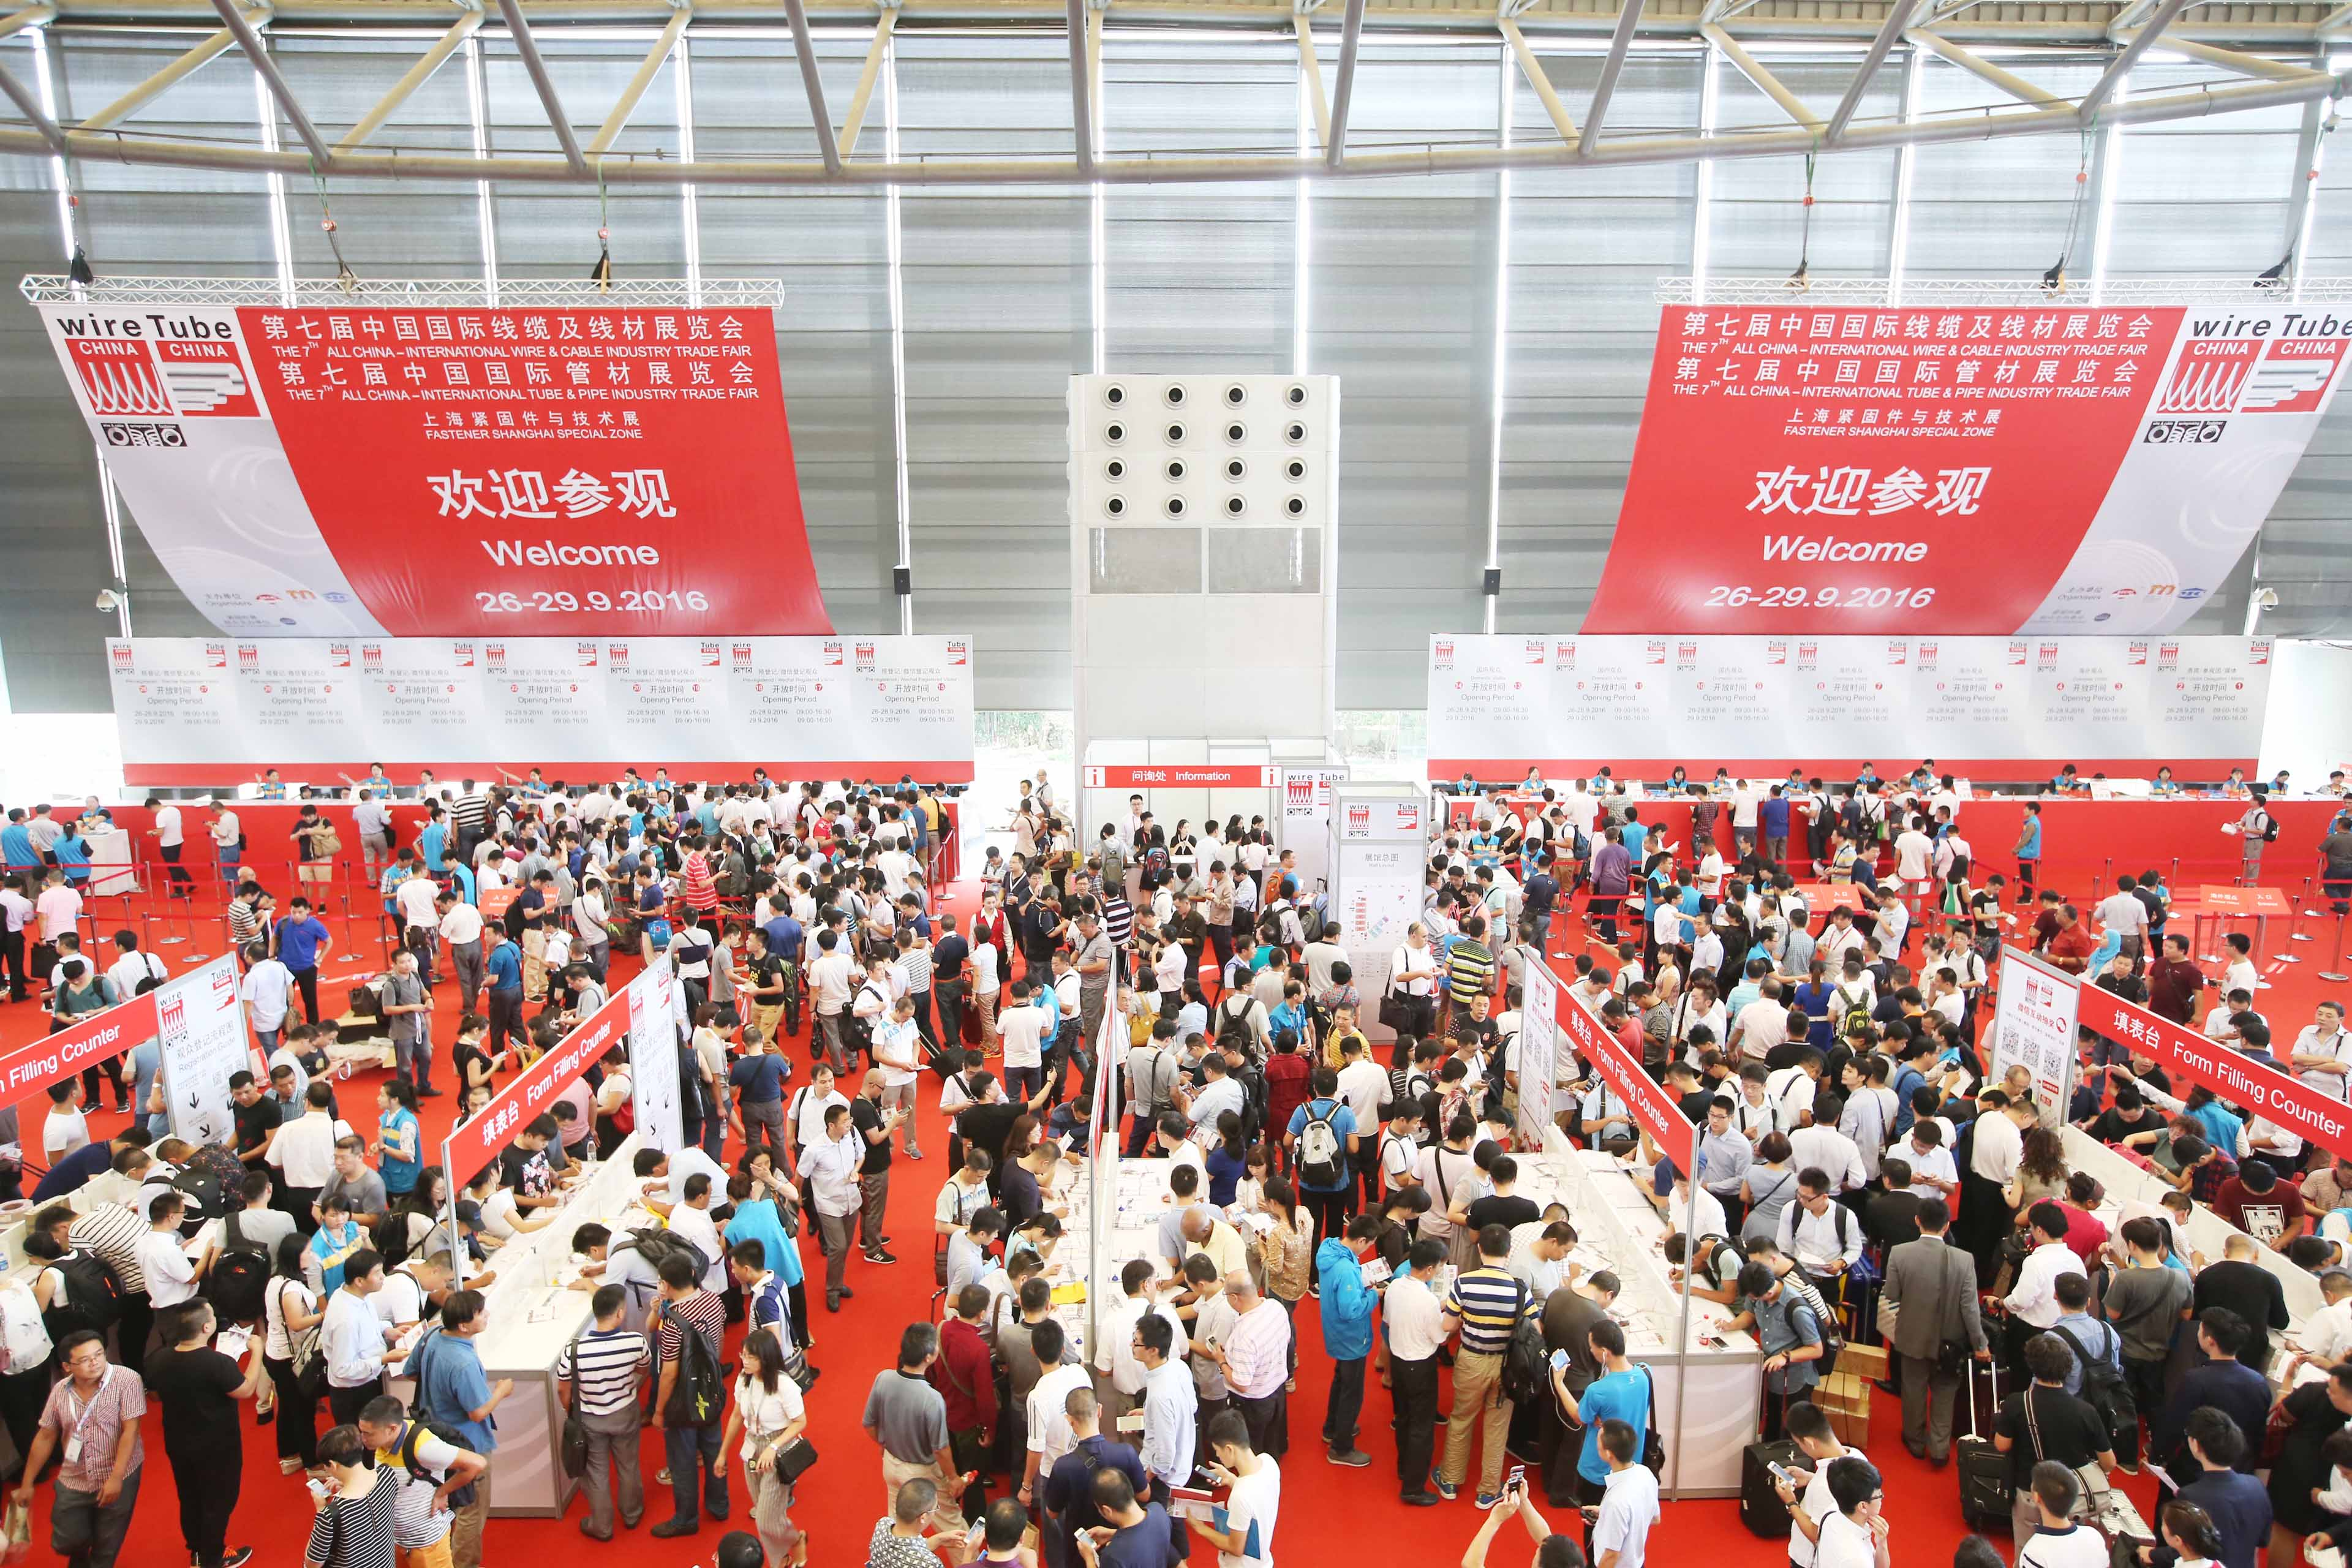 Autumn 2018 reunion sparks on-going booth reservations for the next wire & Tube China.